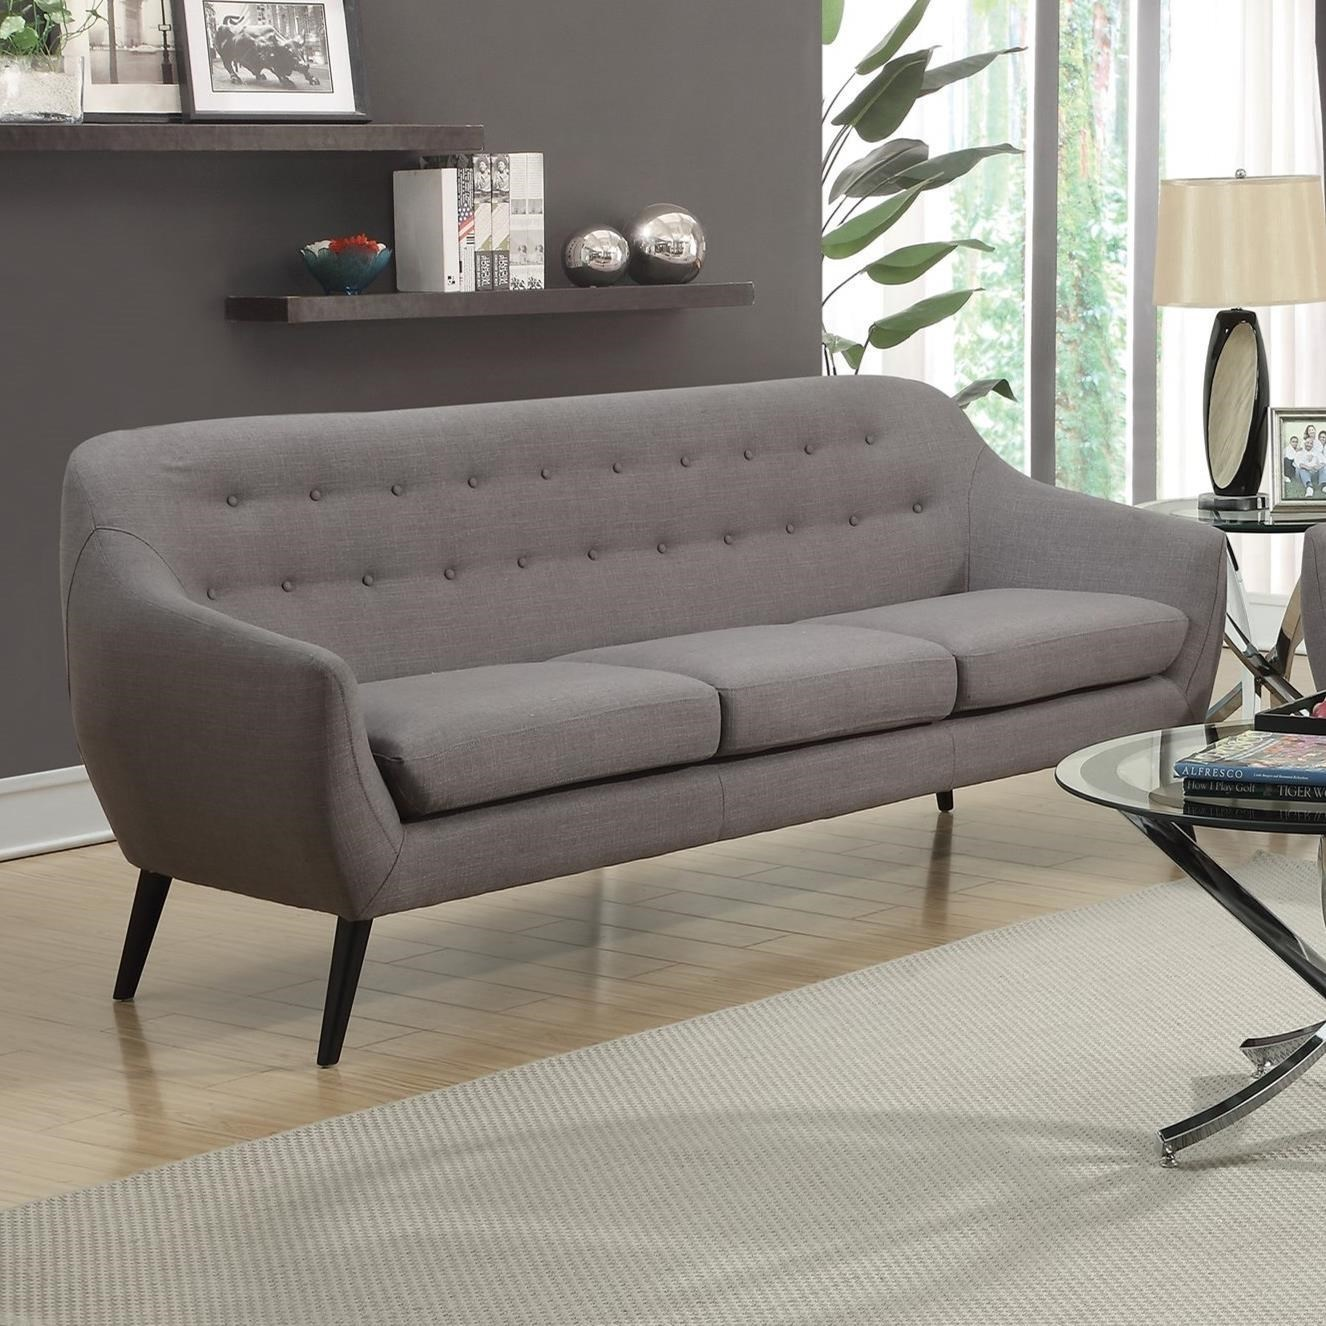 Modern Furniture Cheap Prices: Dawson Mid Century Modern Sofa